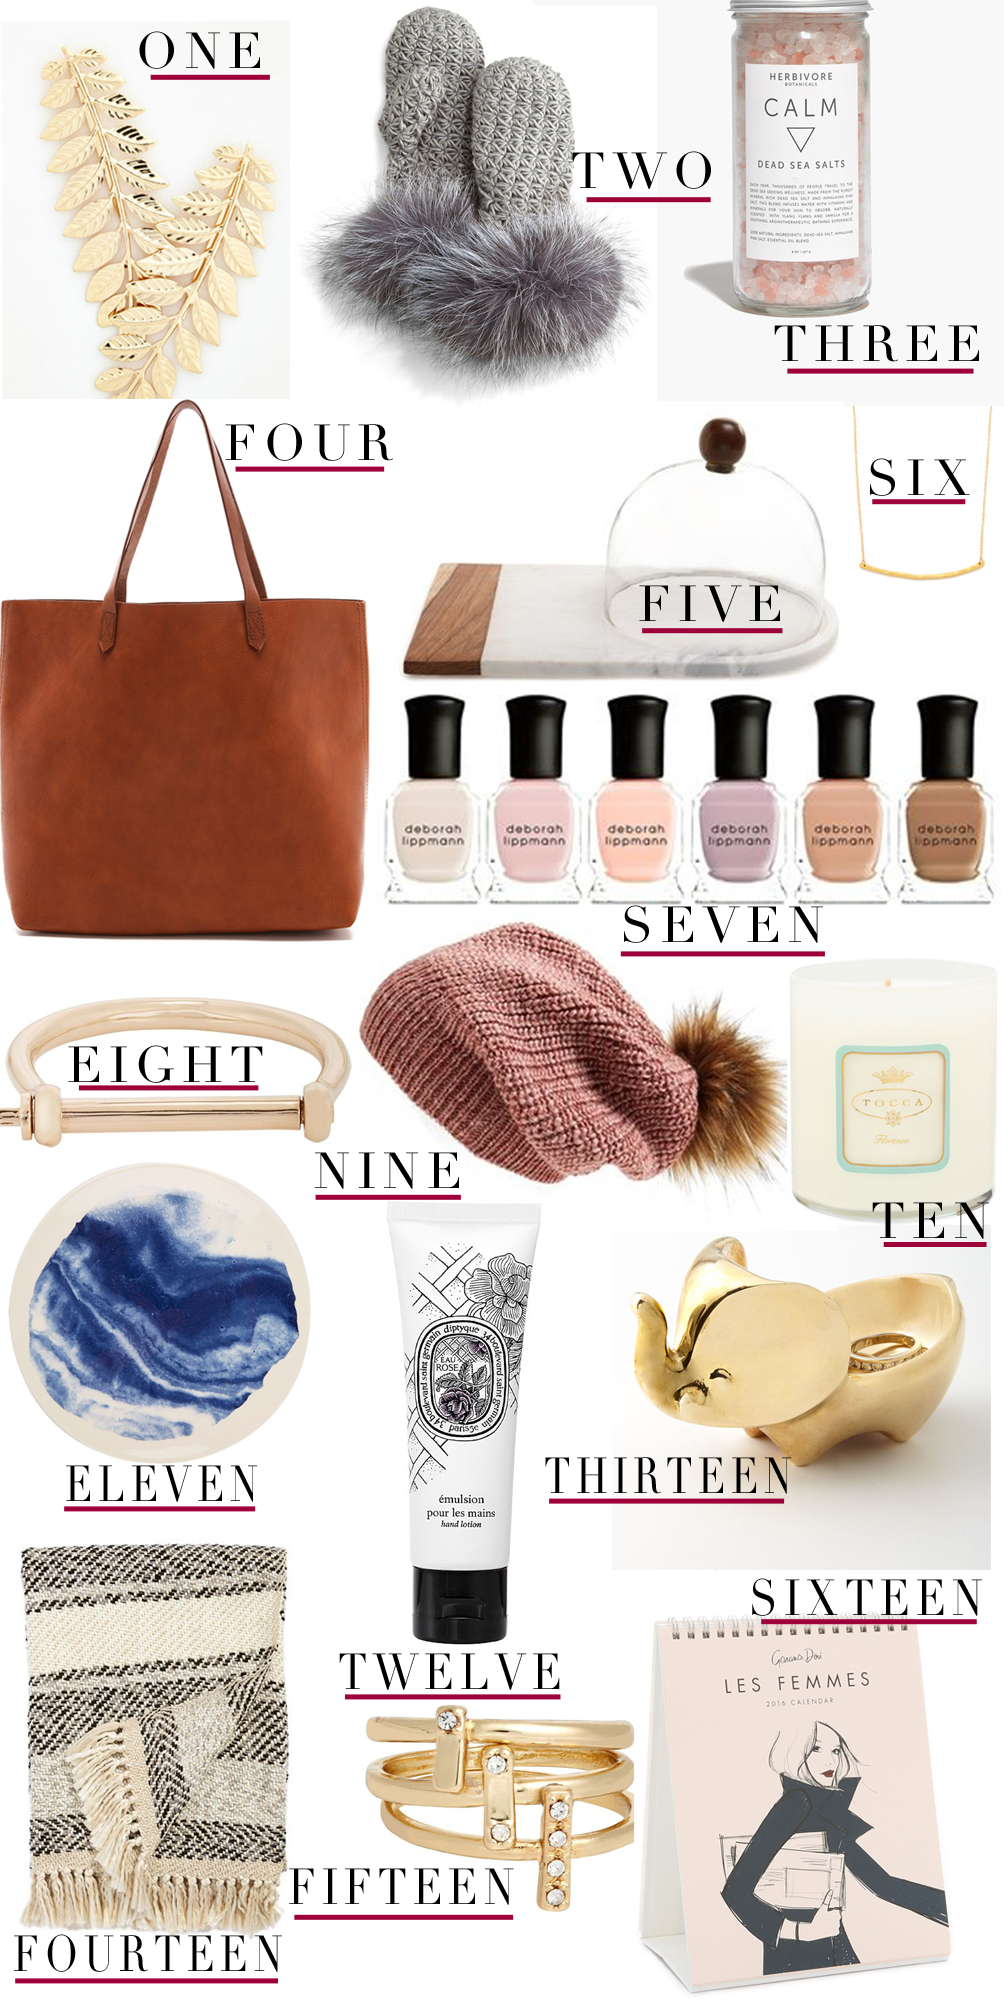 Girlfriends Gift Guide 2015_edited-1